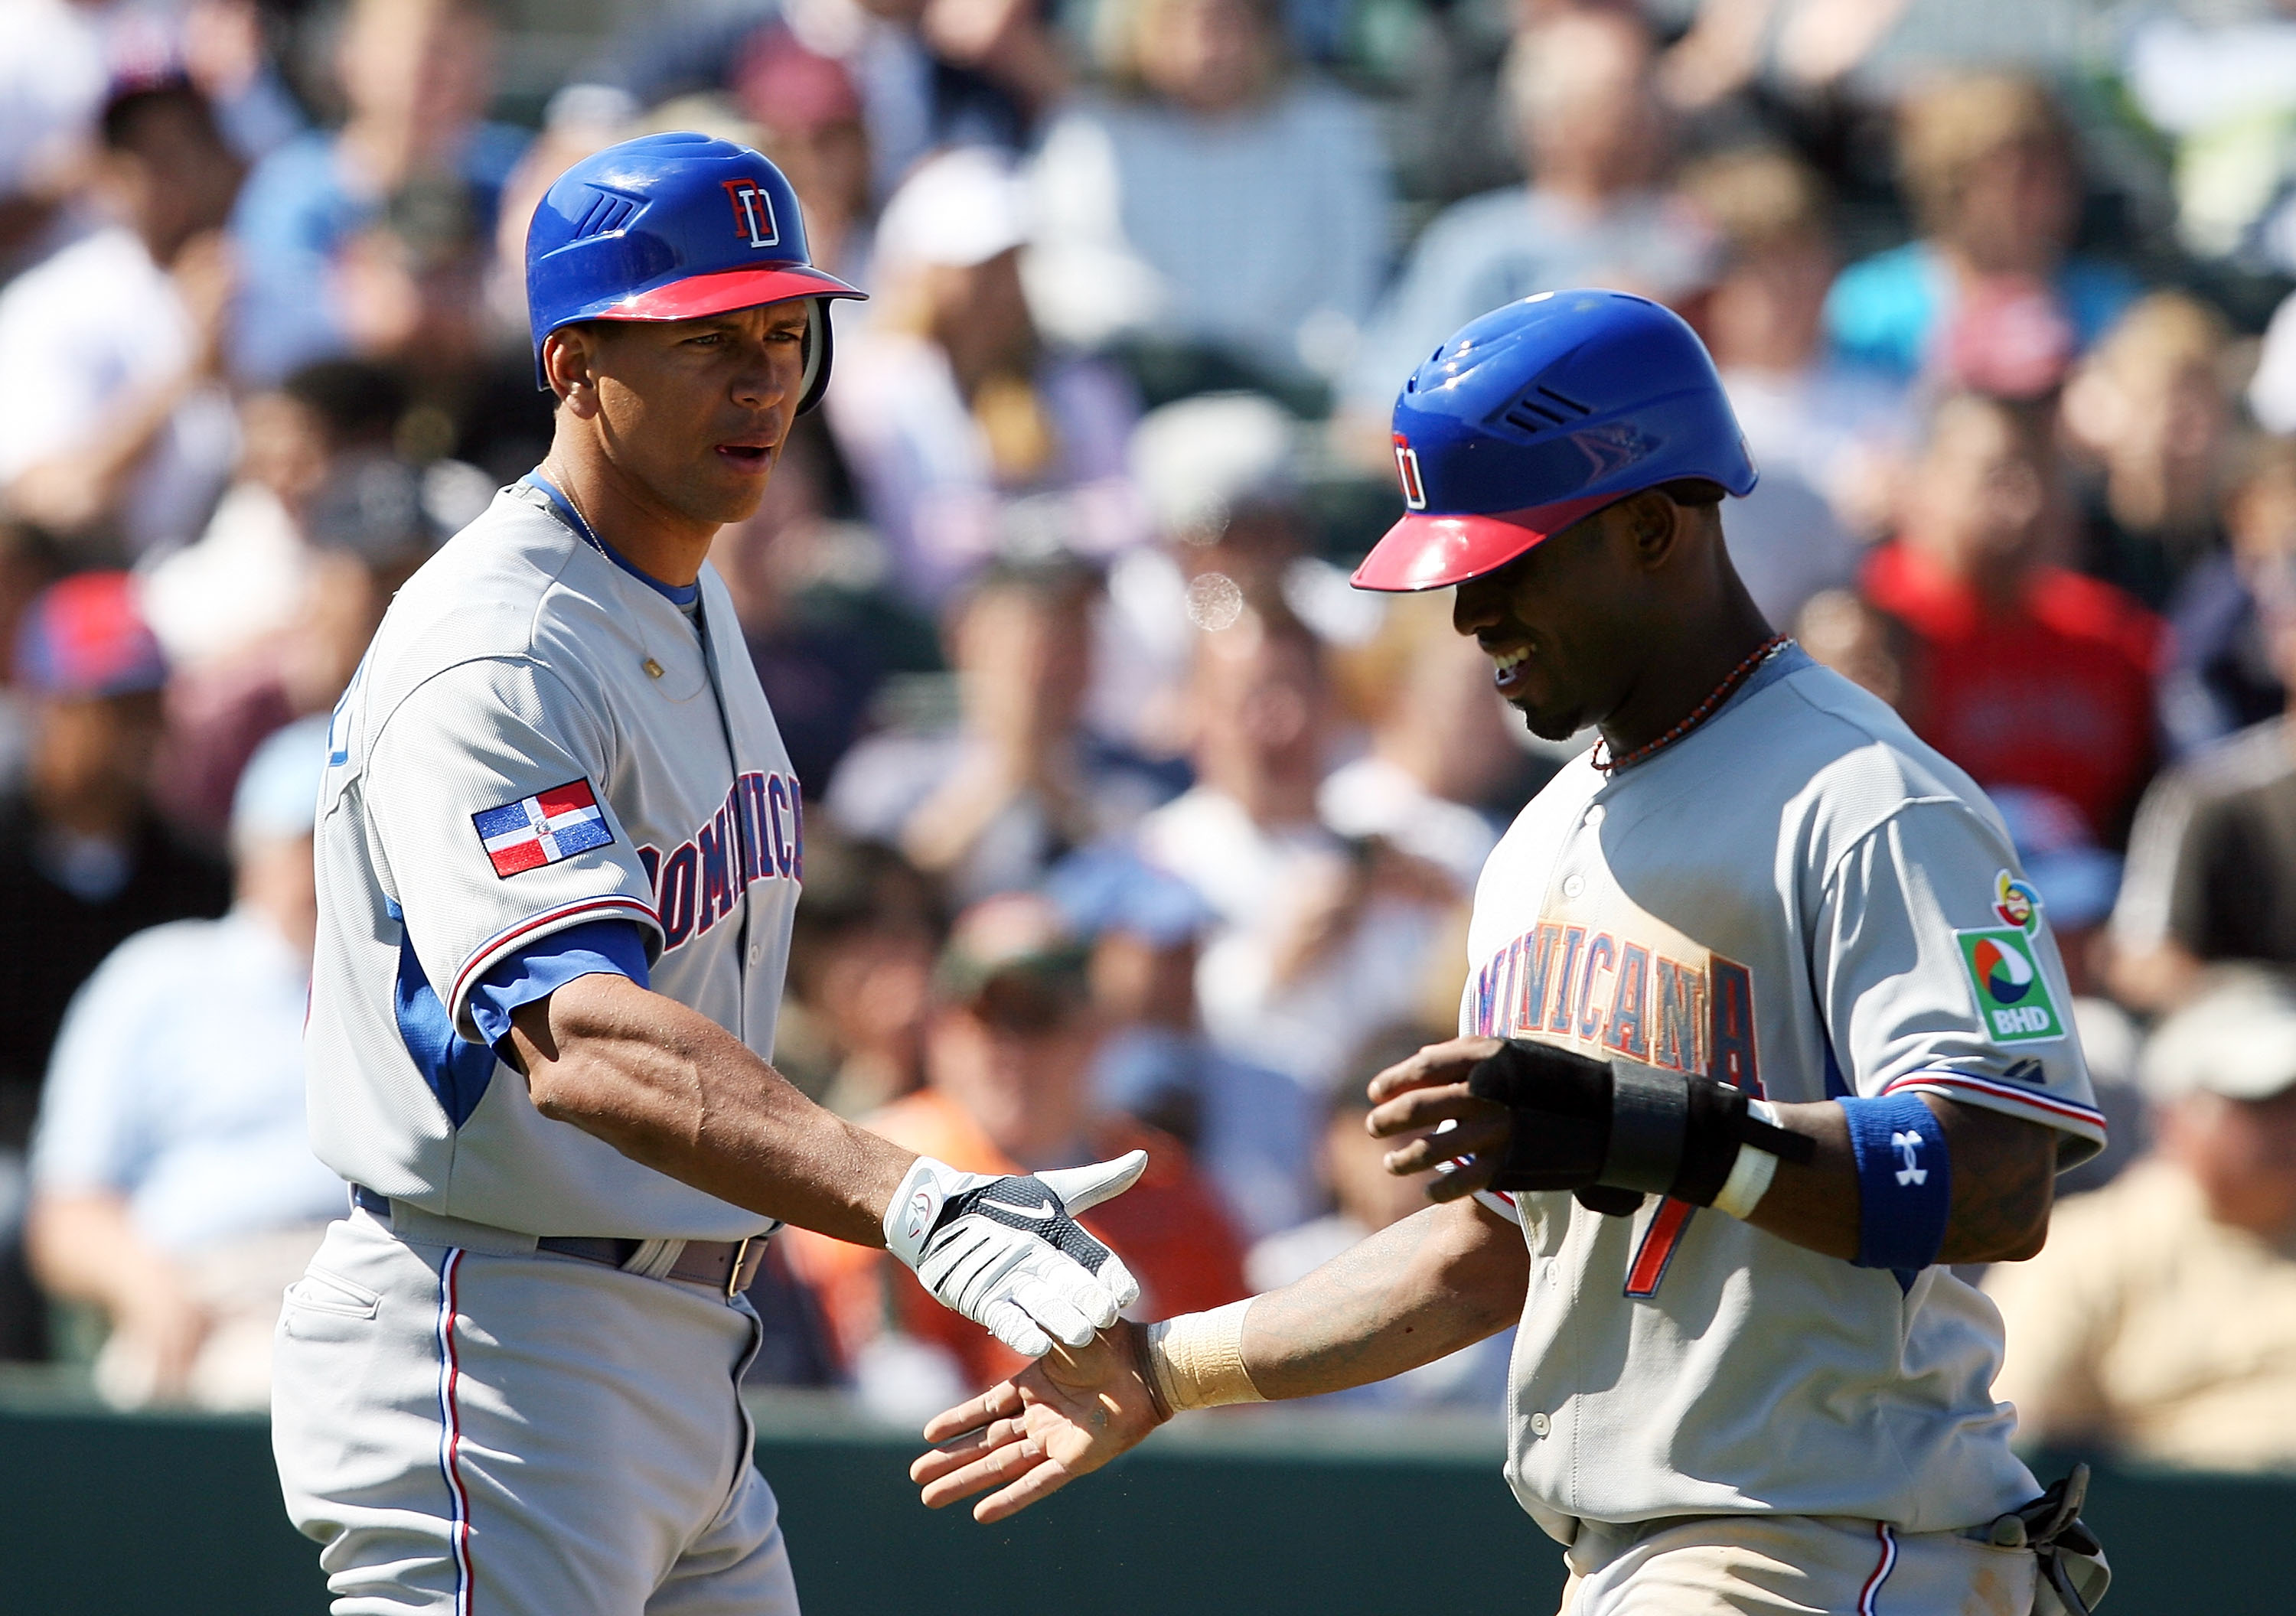 JUPITER, FL - MARCH 3:  Alex Rodriguez #13 of the Dominican Republic congratulates Jose Reyes #7 after Reyes scored against the Florida Marlins during an exhibition game at Roger Dean Stadium March 3, 2009 in Jupiter, Florida.  (Photo by Doug Benc/Getty I